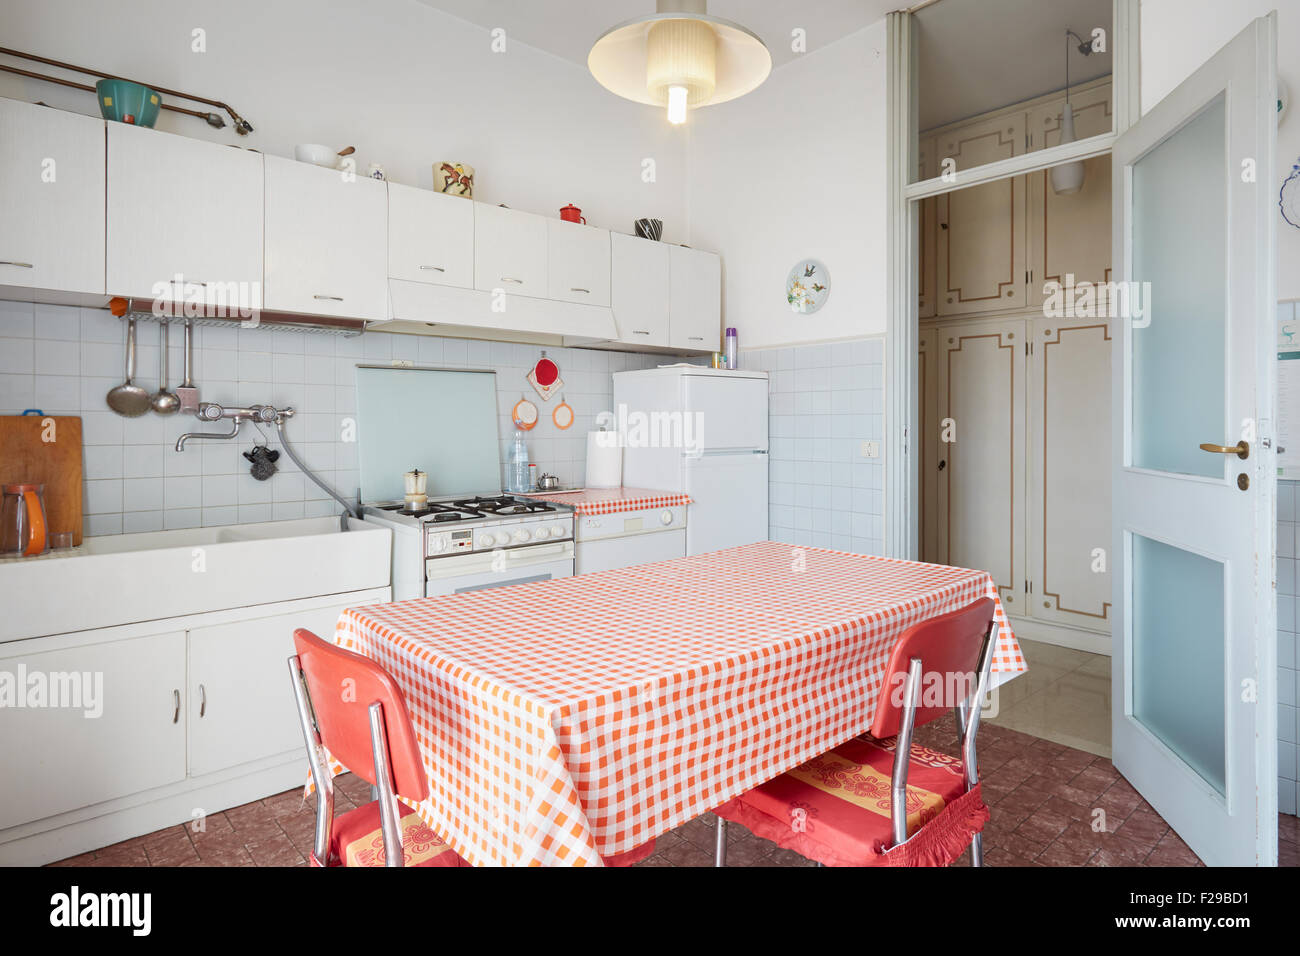 Old kitchen in normal house interior - Stock Image